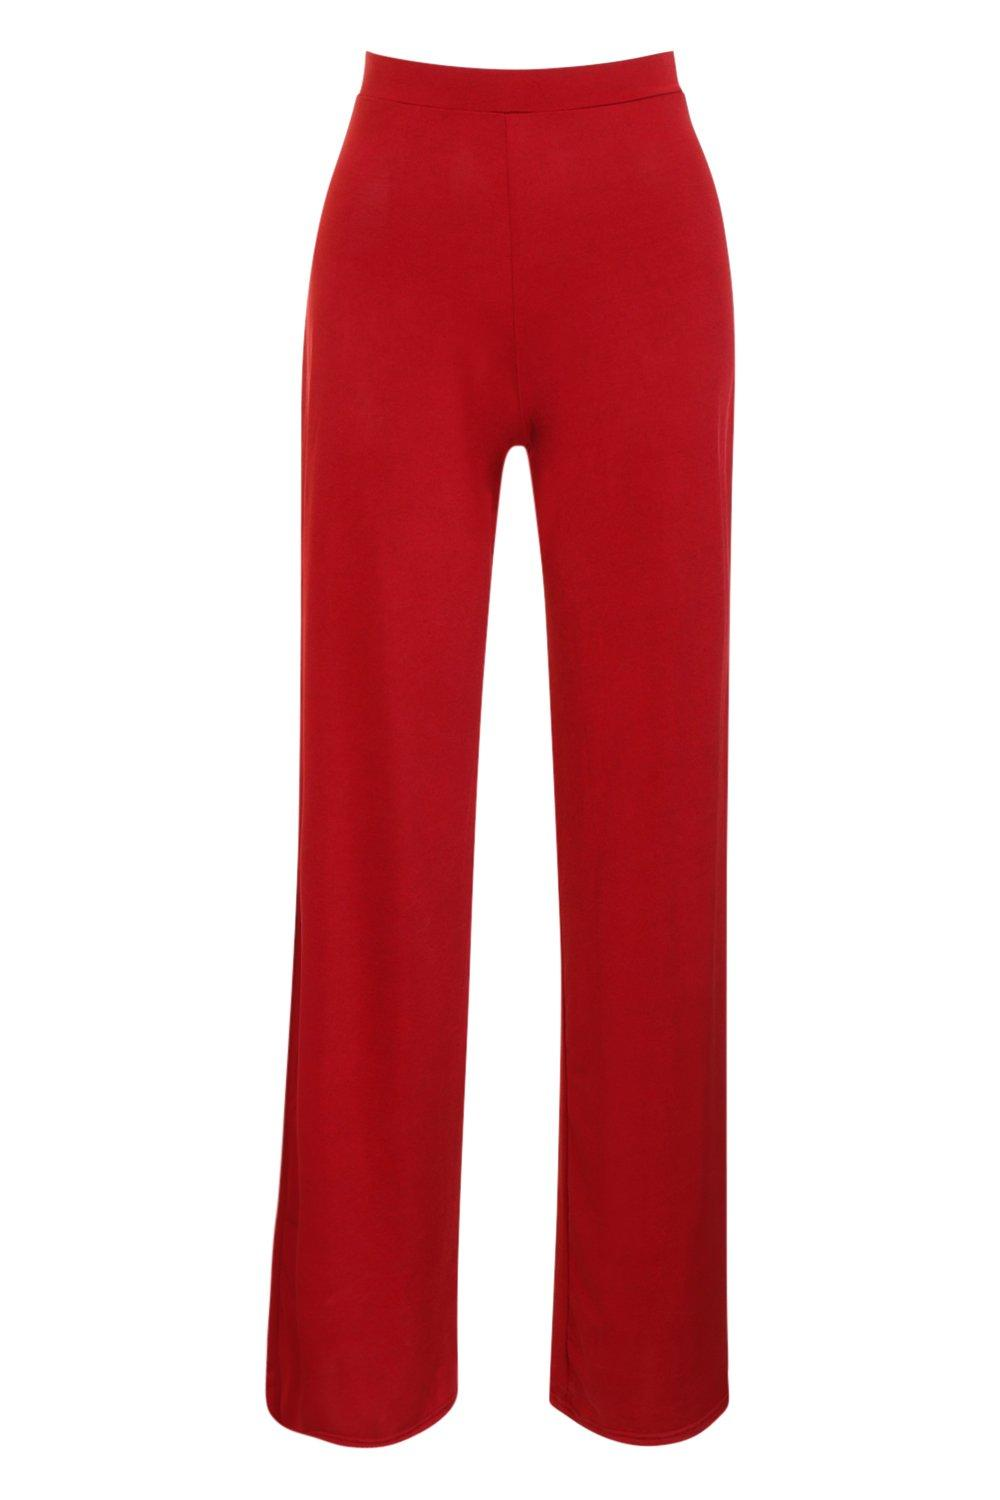 Disco Slinky Wide Leg Trousers